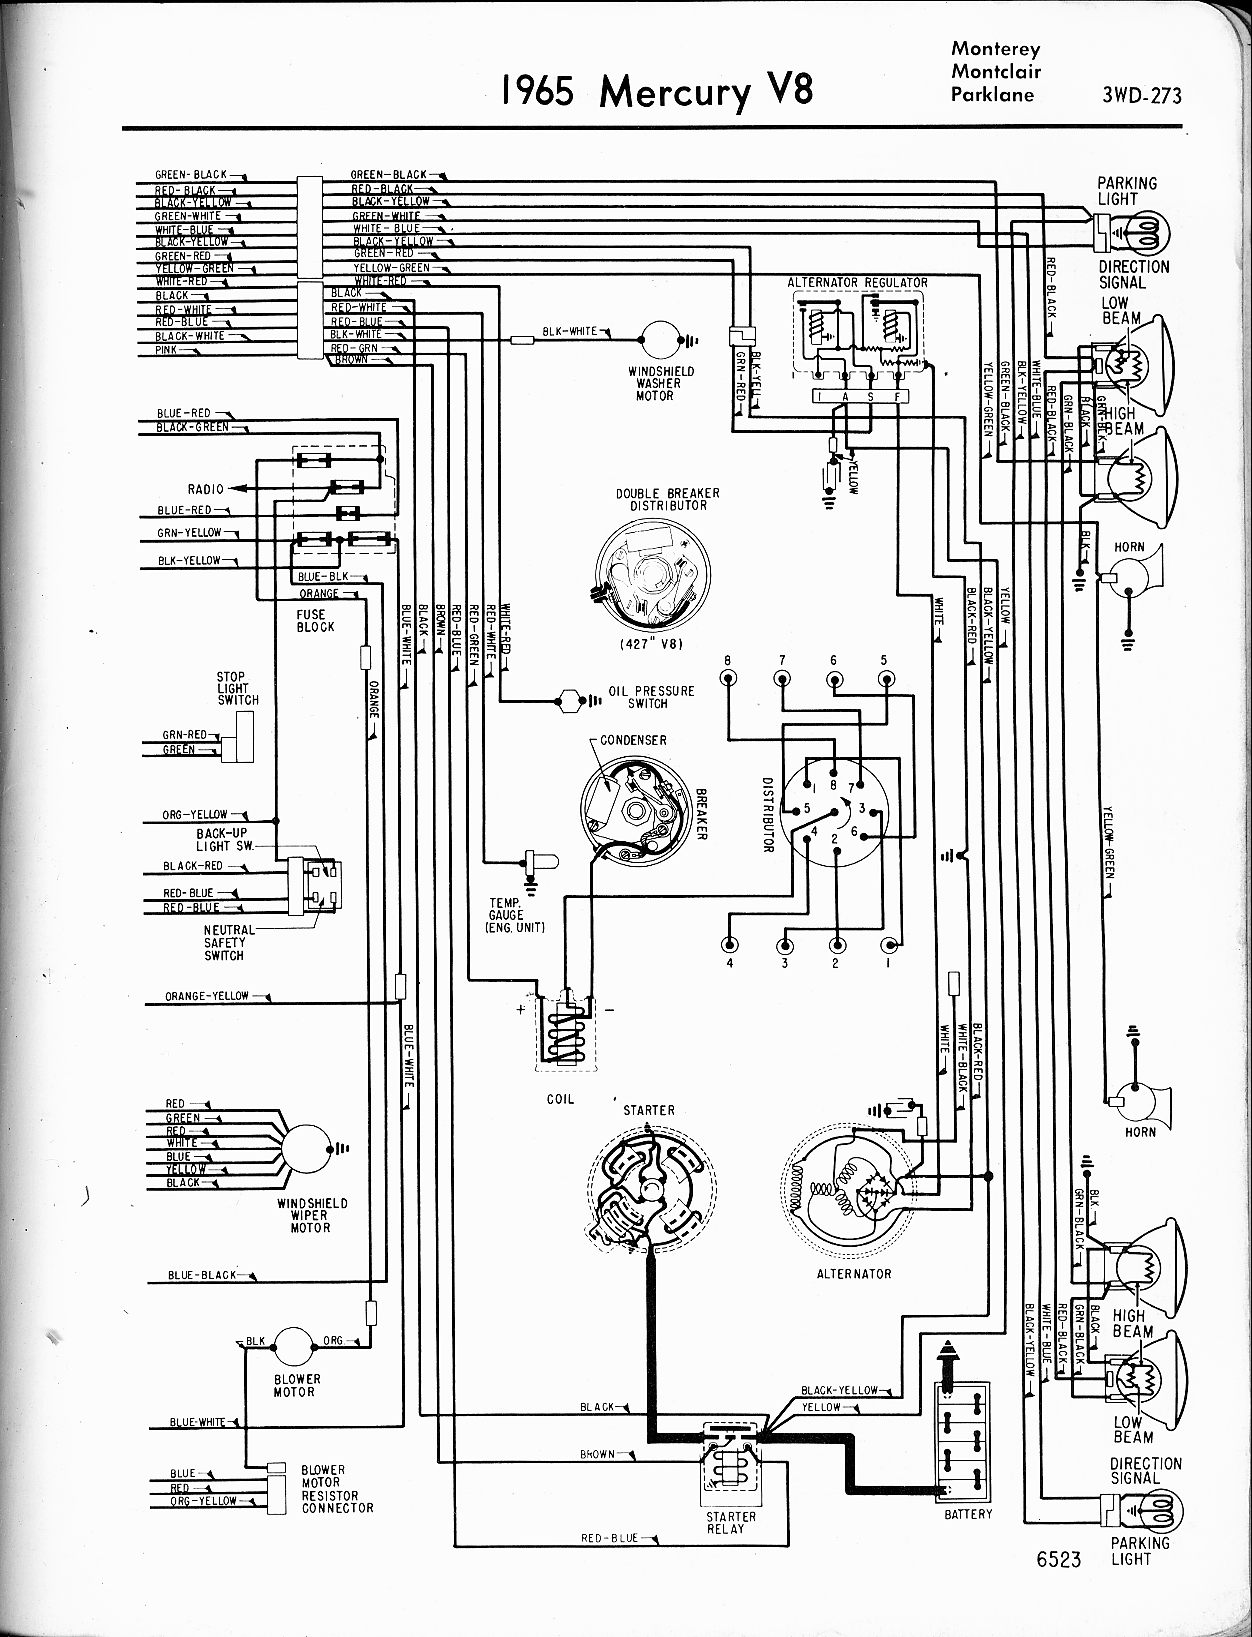 MWire5765 273 1966 lincoln continental wiring diagram 1970 lincoln continental 57 Chevy Wiring Diagram at gsmx.co